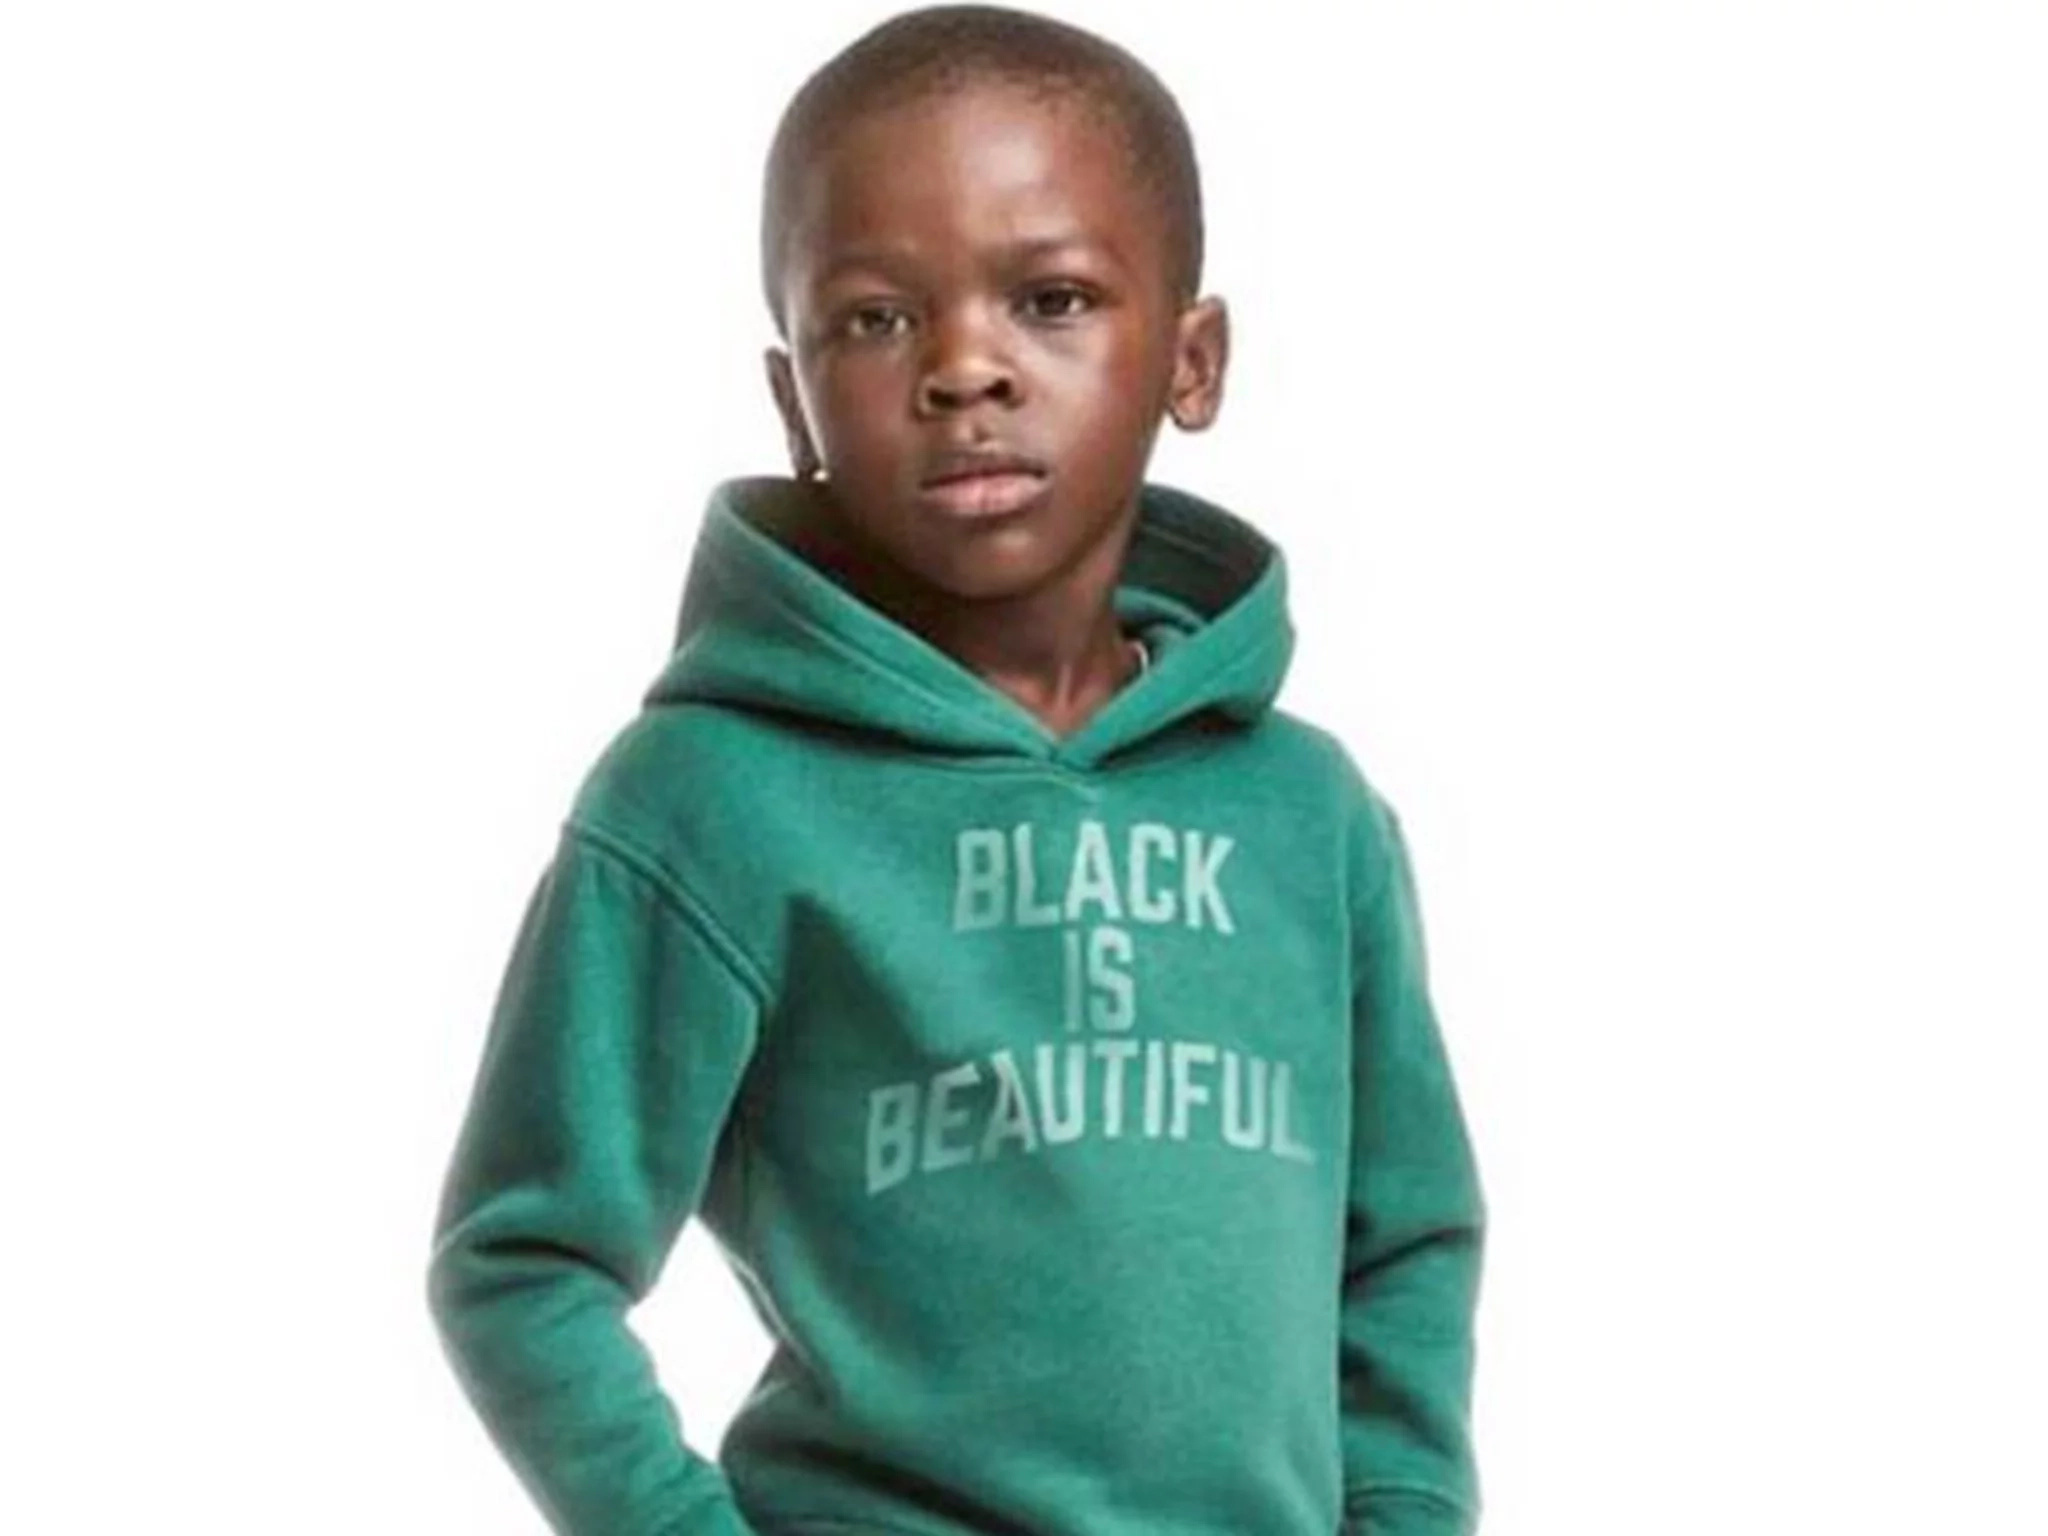 Rapper G-Eazy ends H&M partnership over 'racist' advert